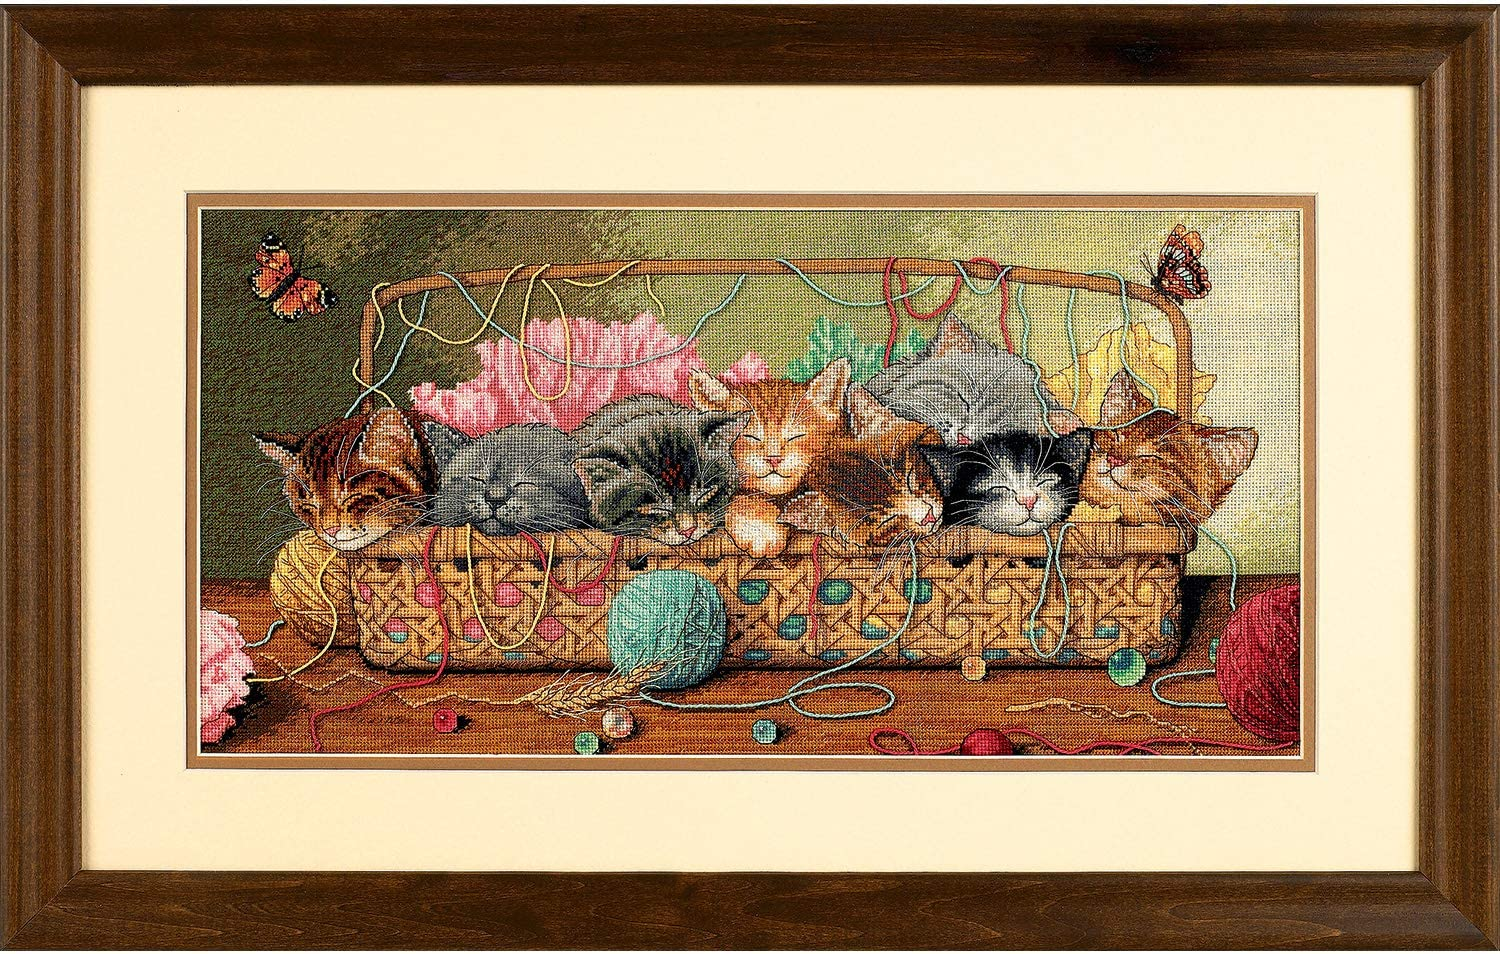 Dimensions Gold Collection Counted Cross Stitch Kit, Kitty Litter, 18 Count Ivory Aida, 18'' x 9''